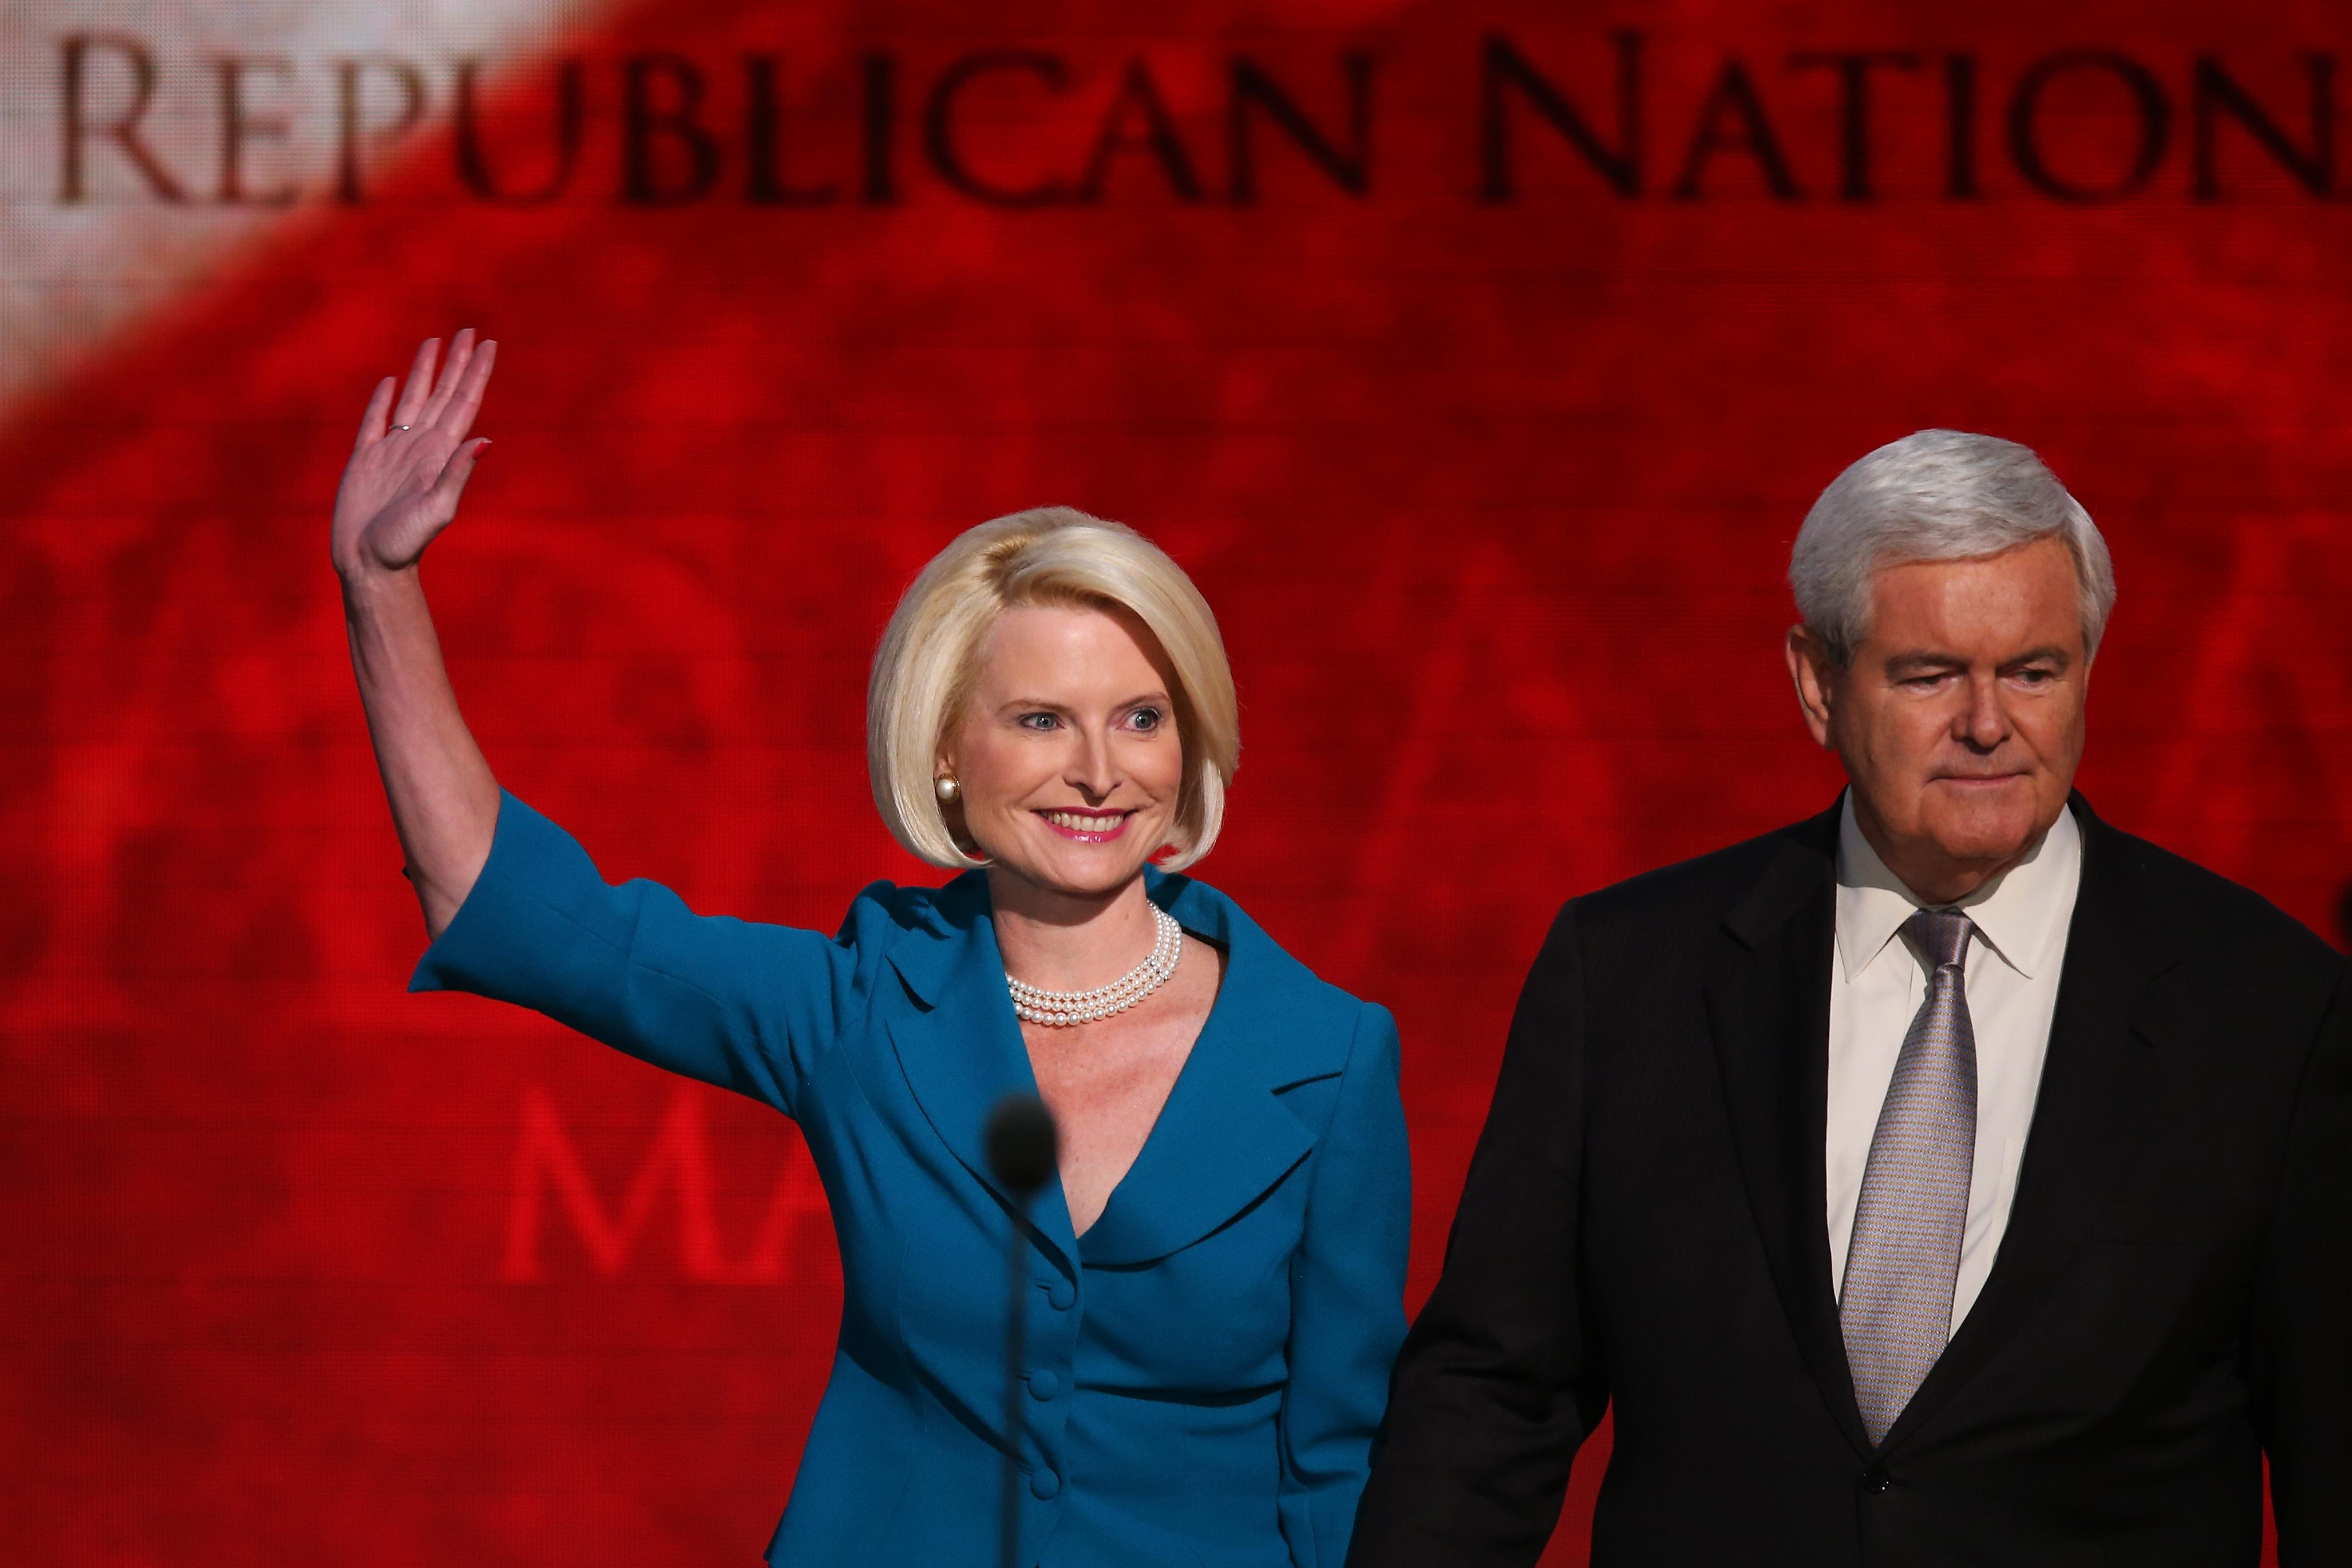 Newt Gingrich and Wife Callista at Republican National Convention